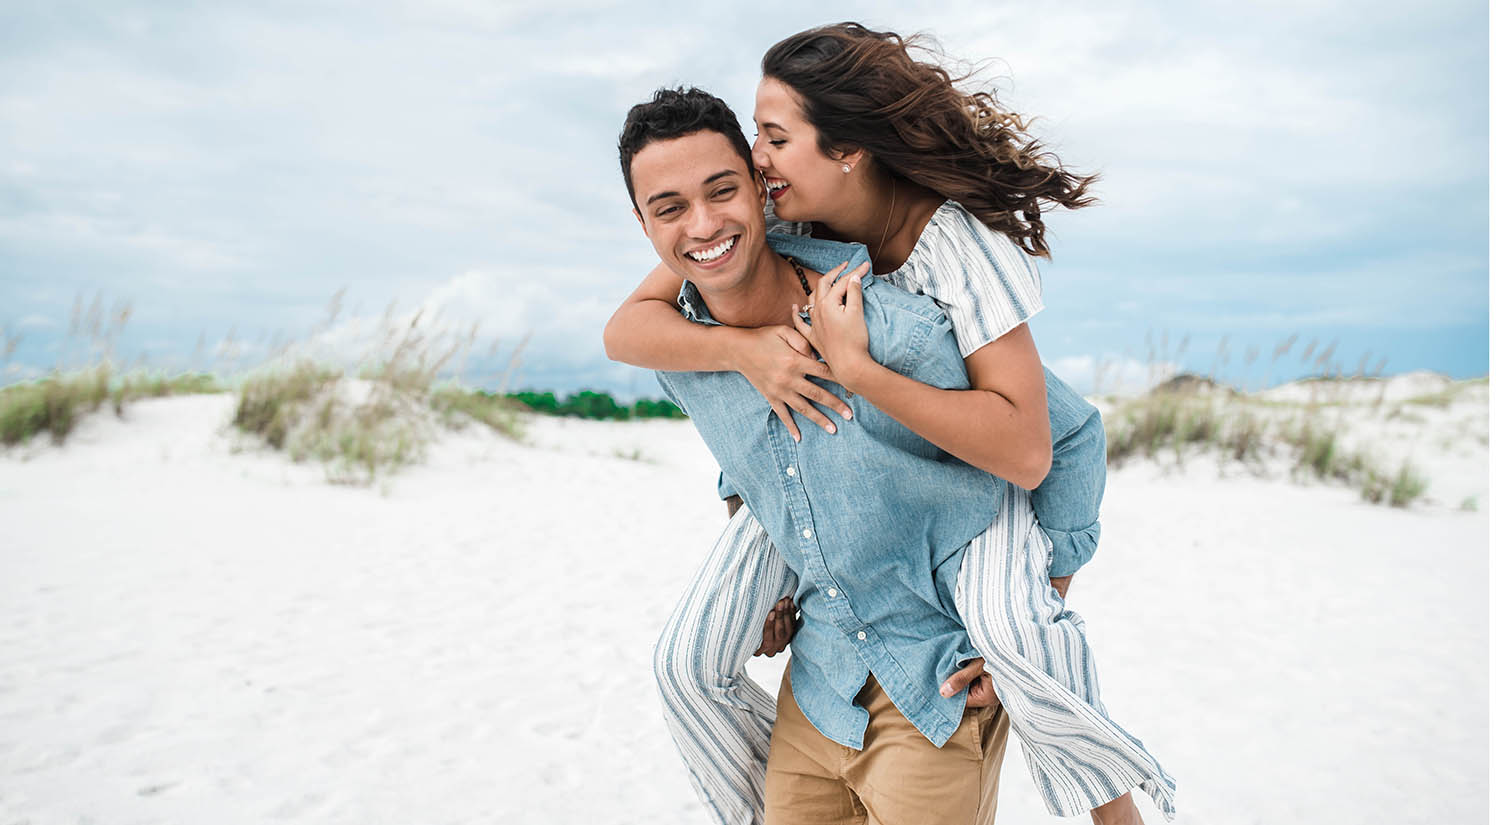 A woman laughs will her husband gives her a piggy-back ride at the beach